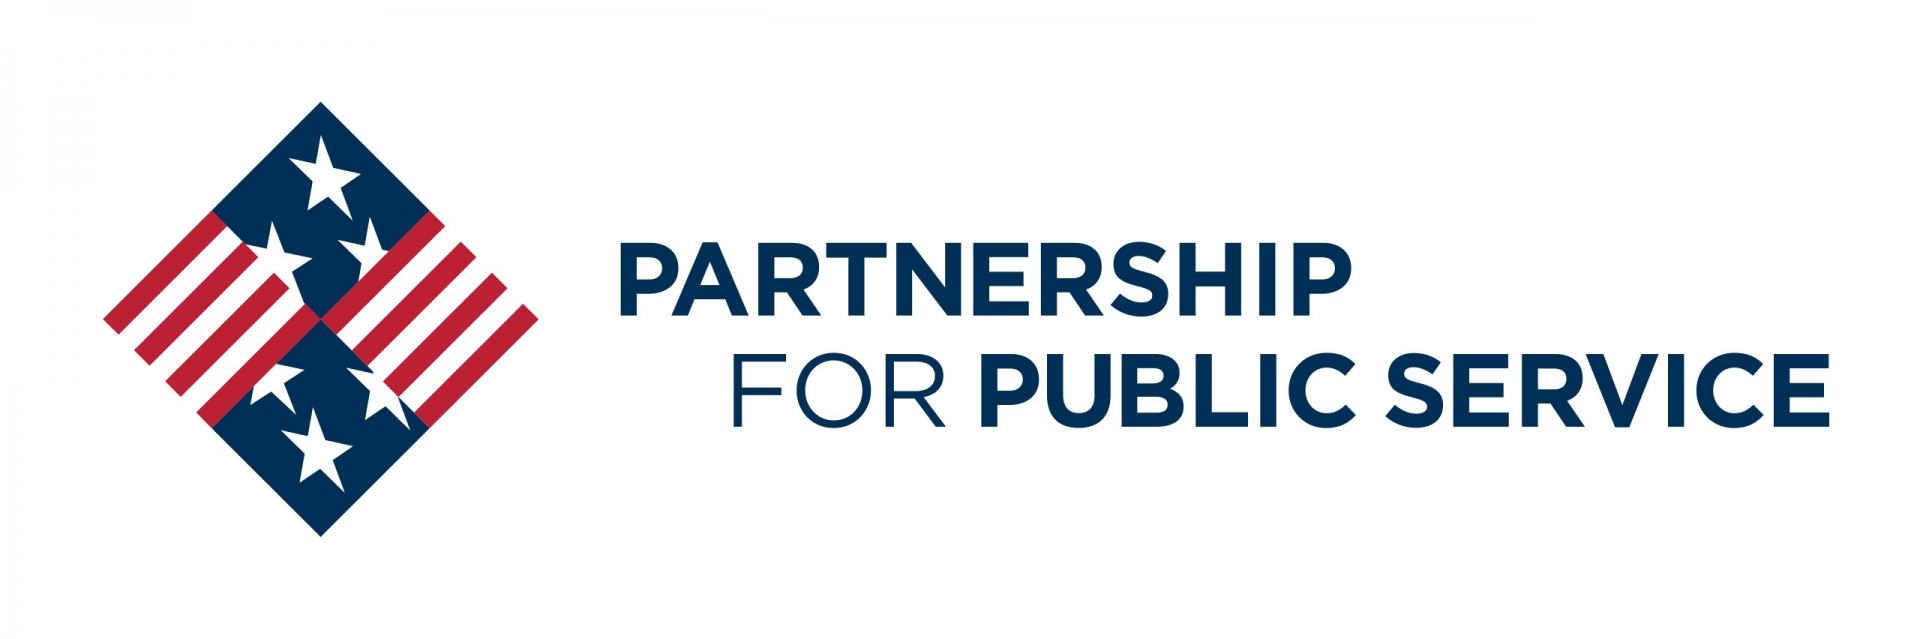 Partnership for Public Service logo